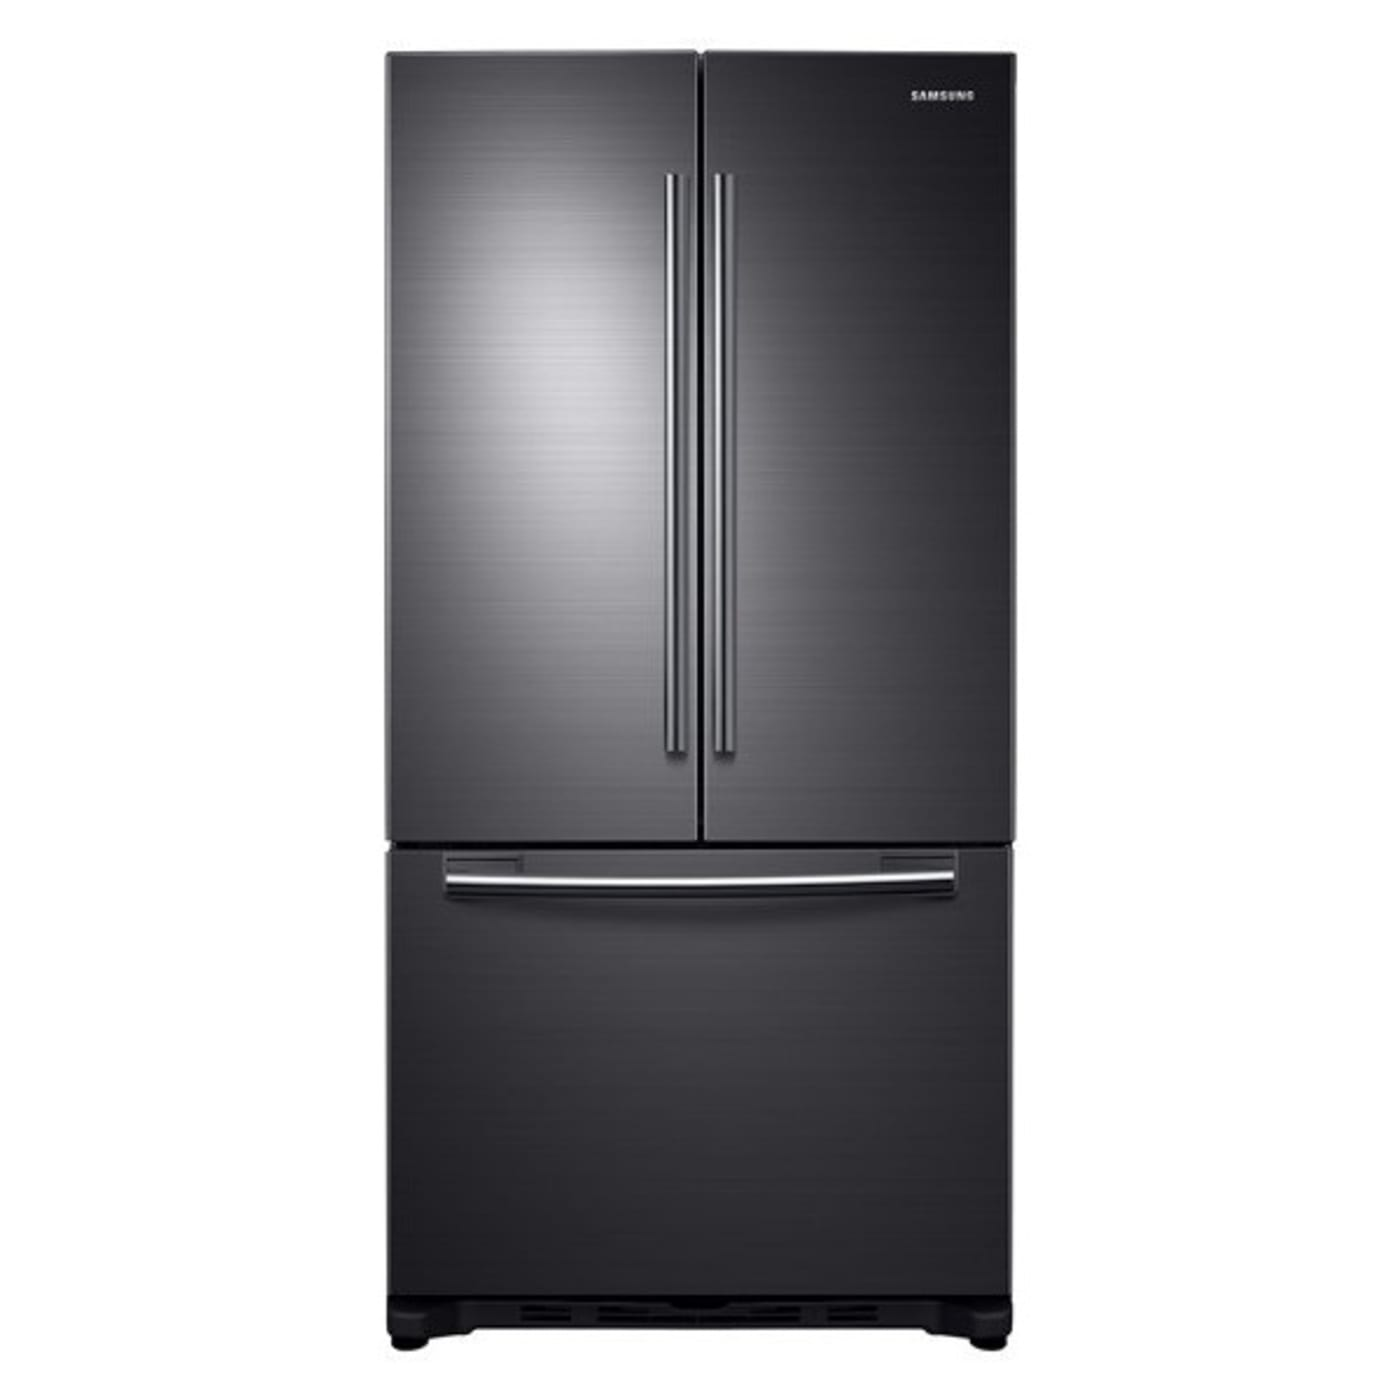 "Samsung RF20HFENBSG 32"" 20 cu ft Black Stainless Steel Counter"